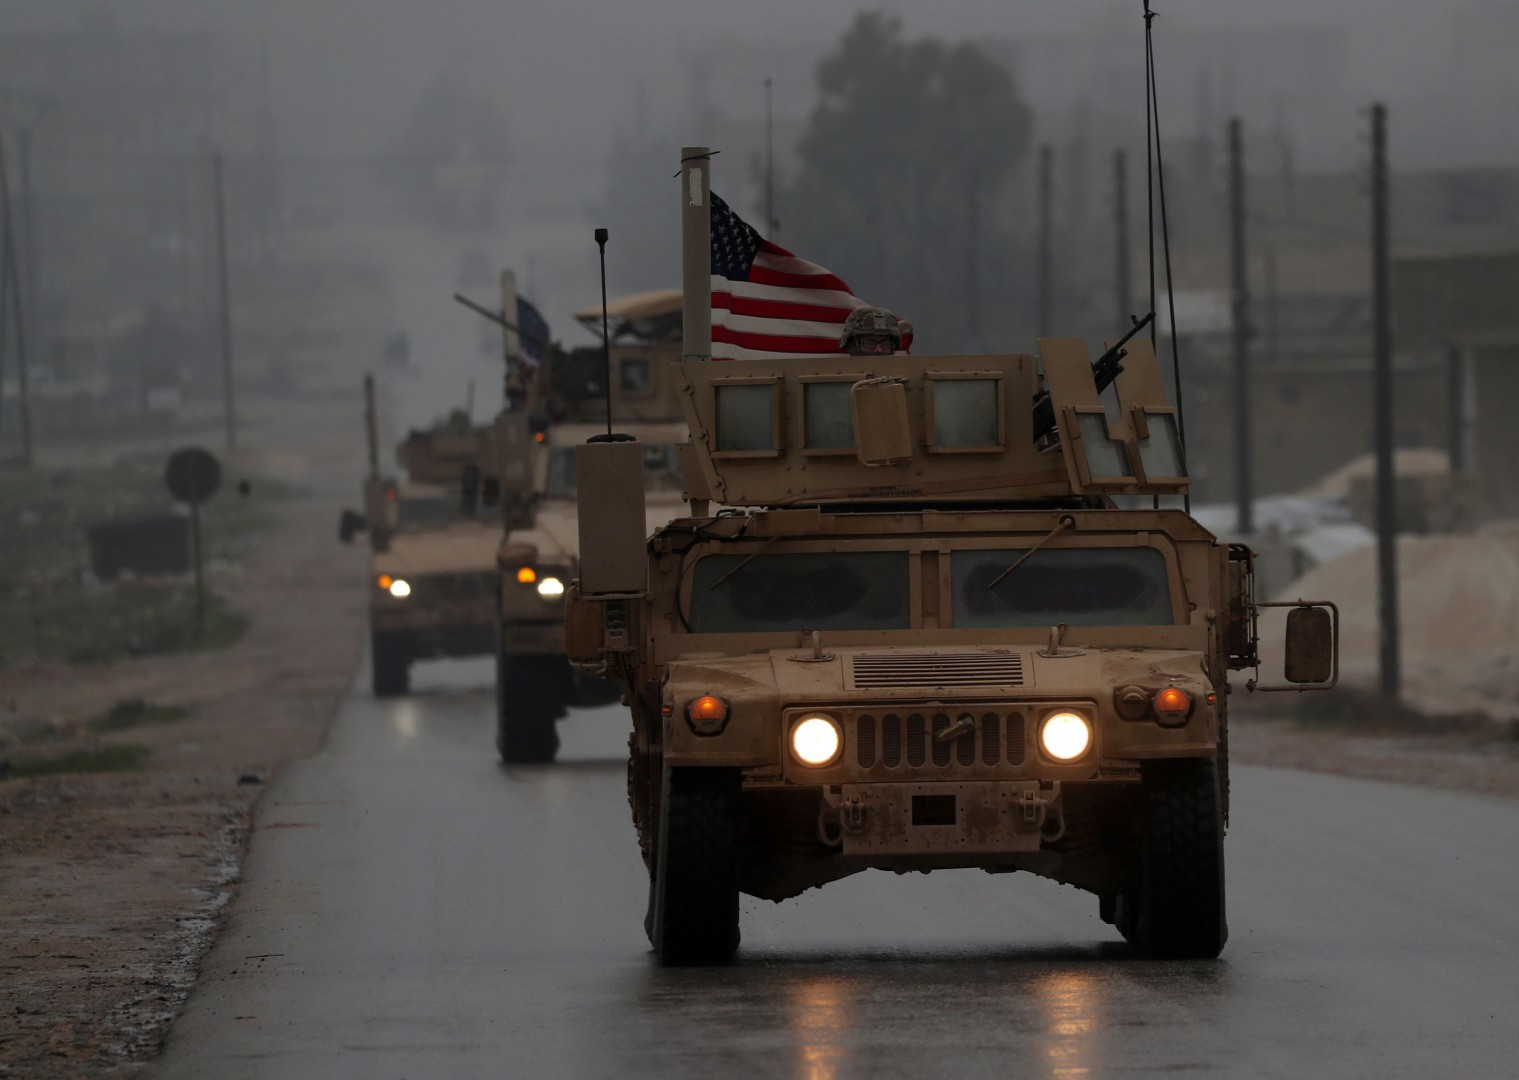 """(FILES) In this file photo taken on December 30, 2018, shows a line of US military vehicles in Syria's northern city of Manbij. - President Donald Trump appeared to backtrack on December 31, 2018 on shock plans for an immediate pullout of US troops from Syria, but said his drive to end American involvement in wars made him a """"hero."""" The shift came a day after a senior Republican senator said Trump had promised to stay in Syria to finish the job of defeating the Islamic State group, also known as ISIS. (Photo by Delil SOULEIMAN / AFP)"""